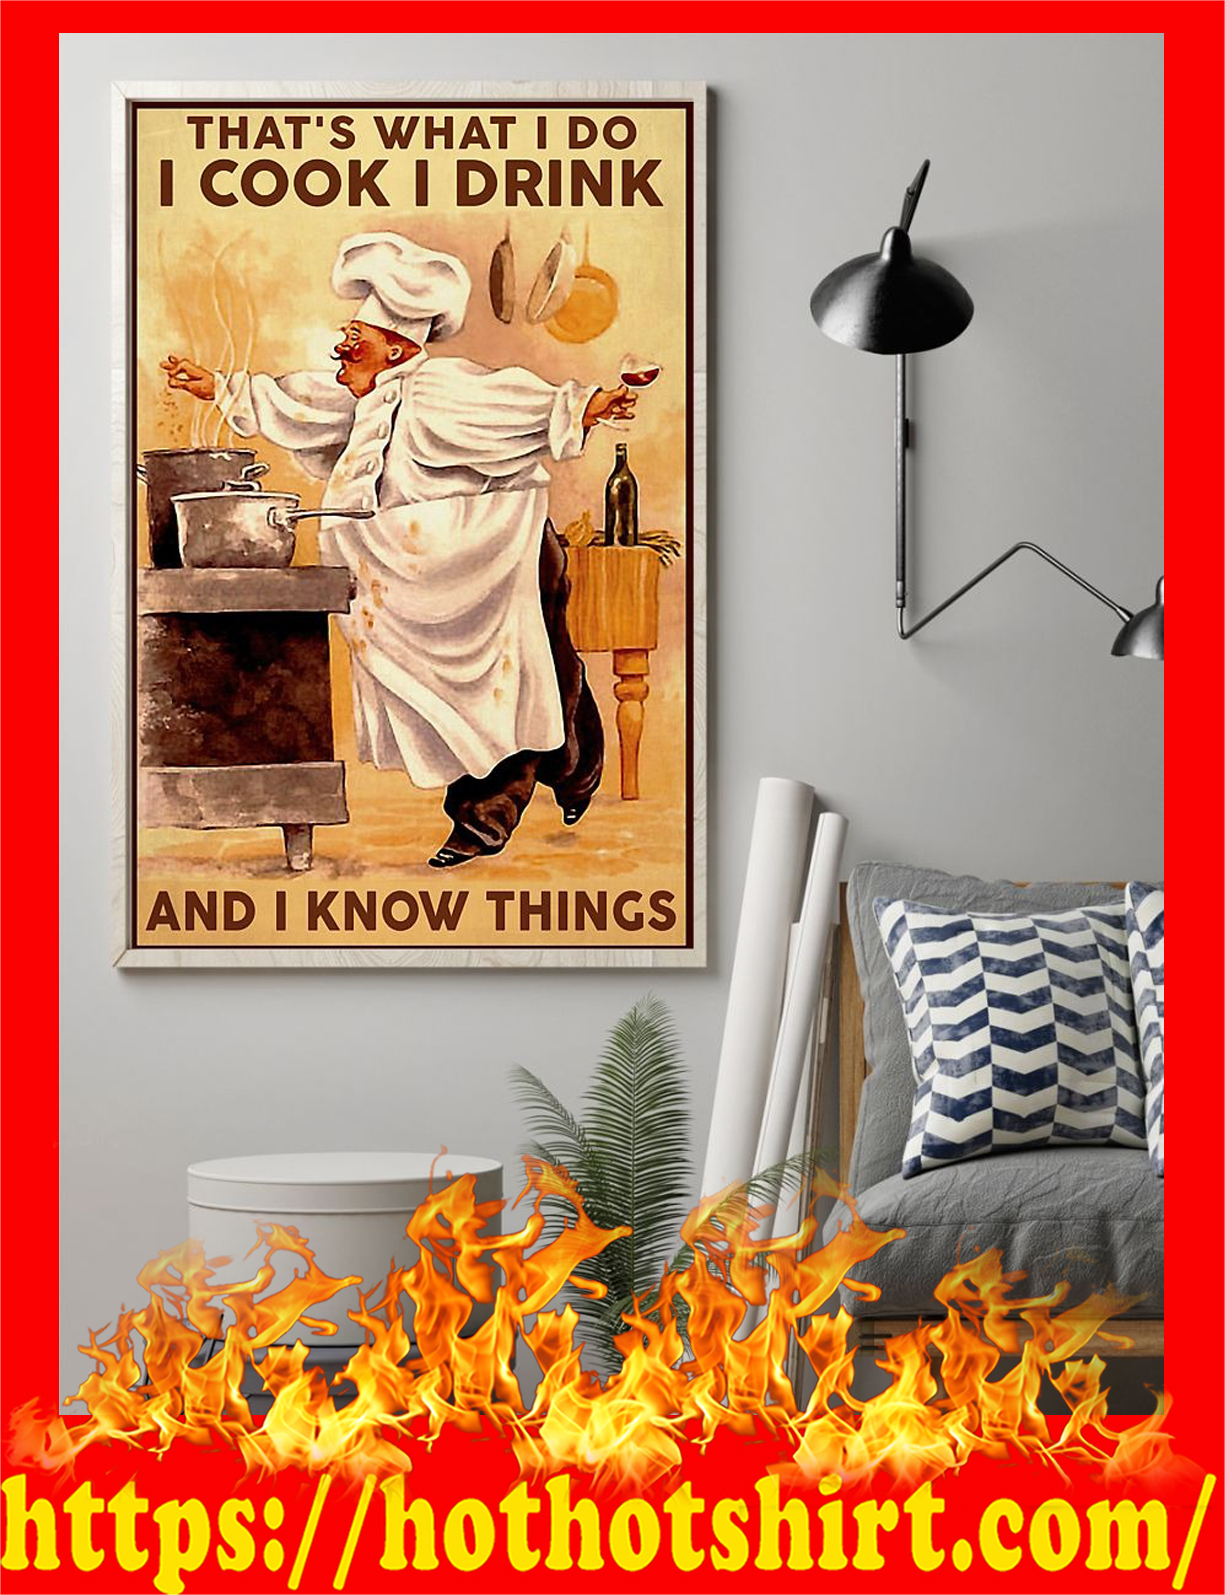 That's what i do i cook i drink and i know things chef poster 2